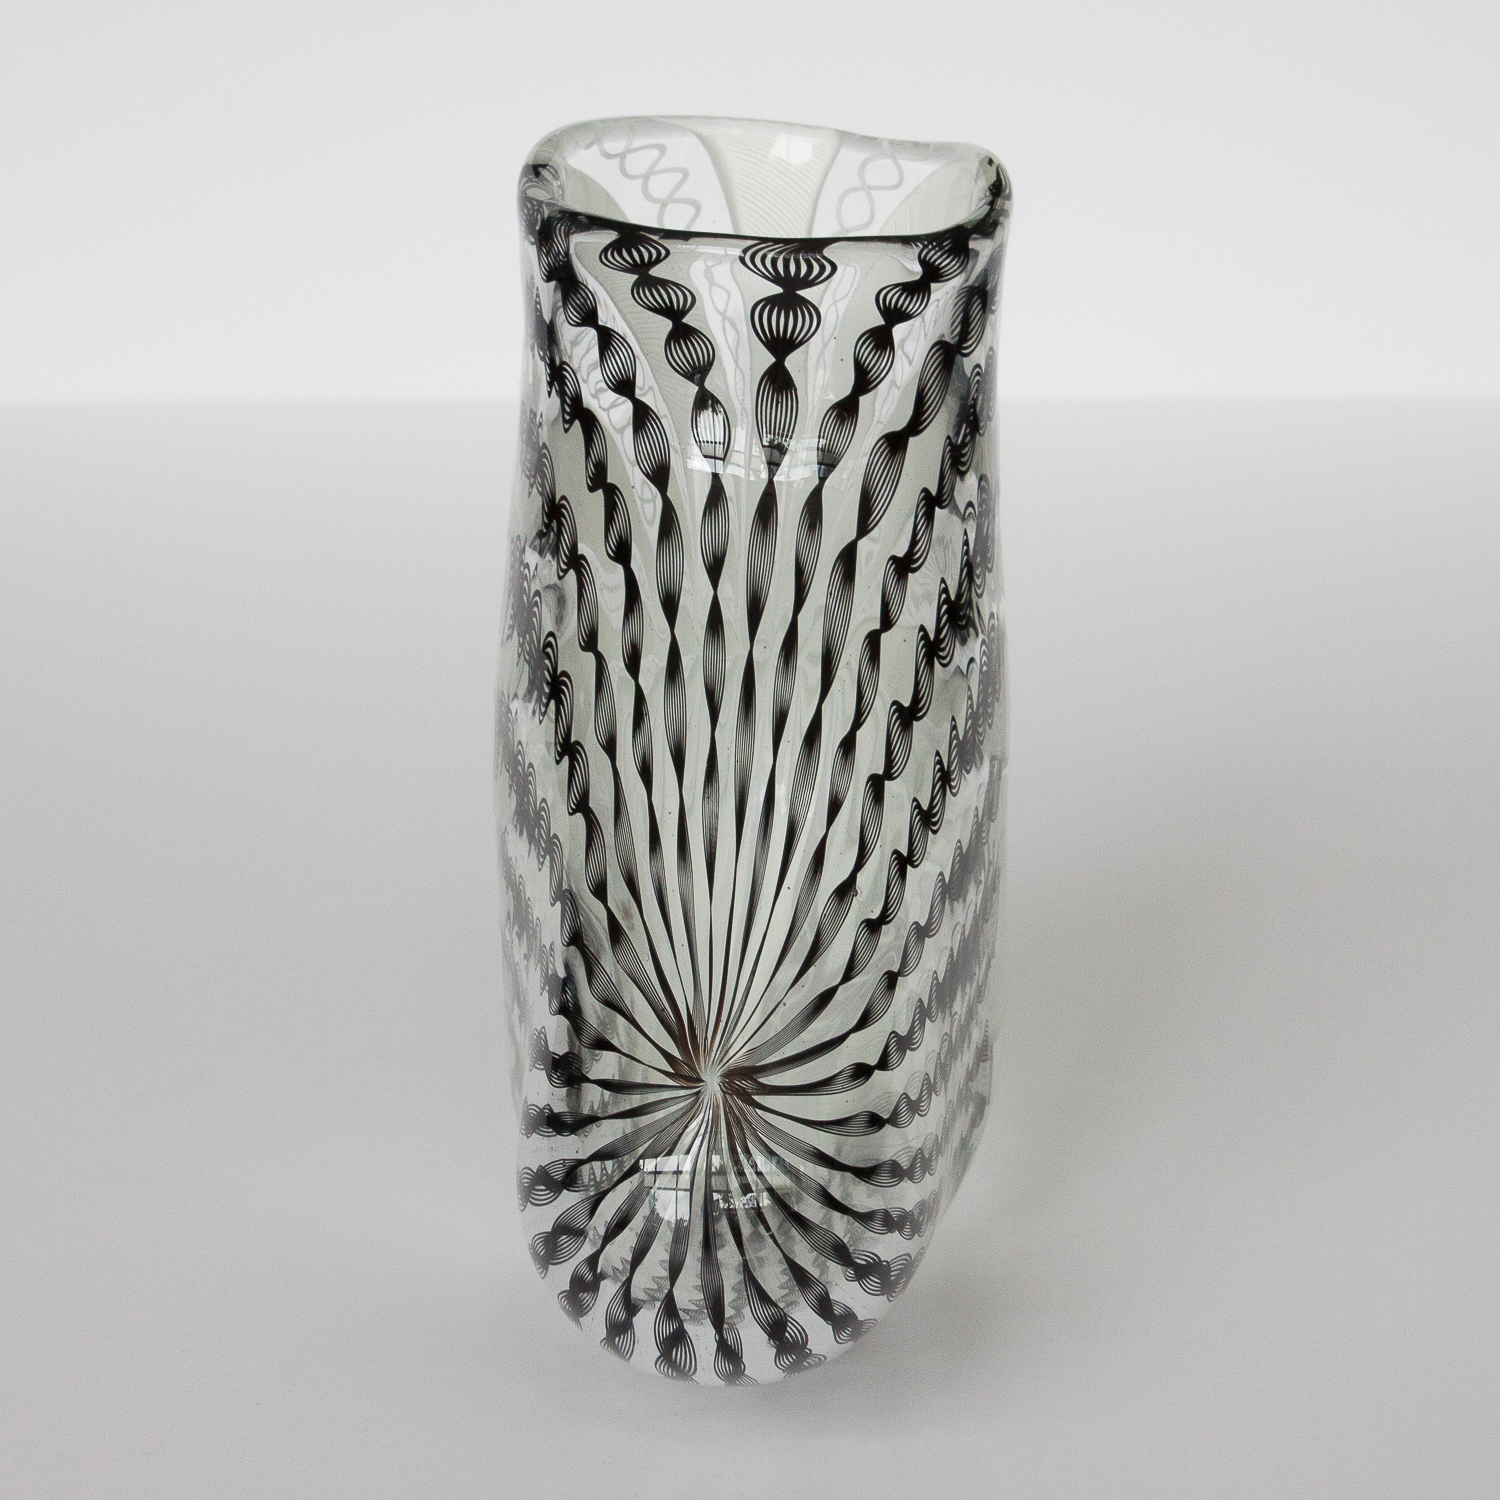 Murano zanfirico black white art glass vase image 5 of 10